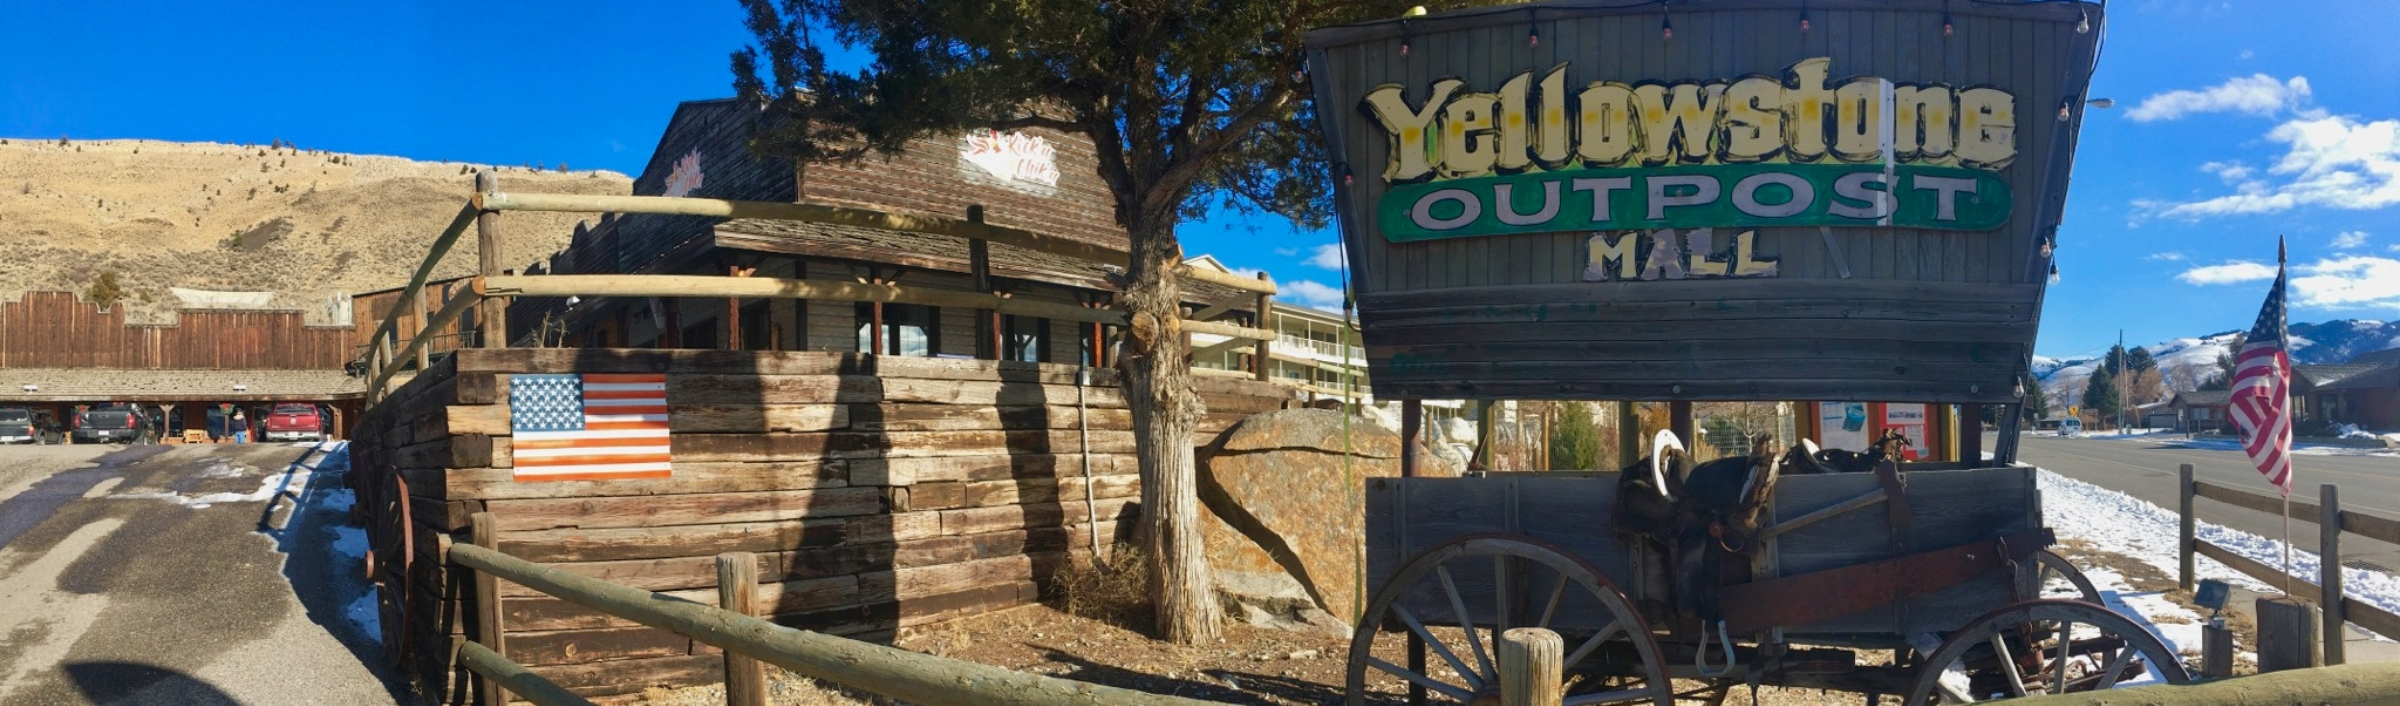 Yellowstone Outpost Mall